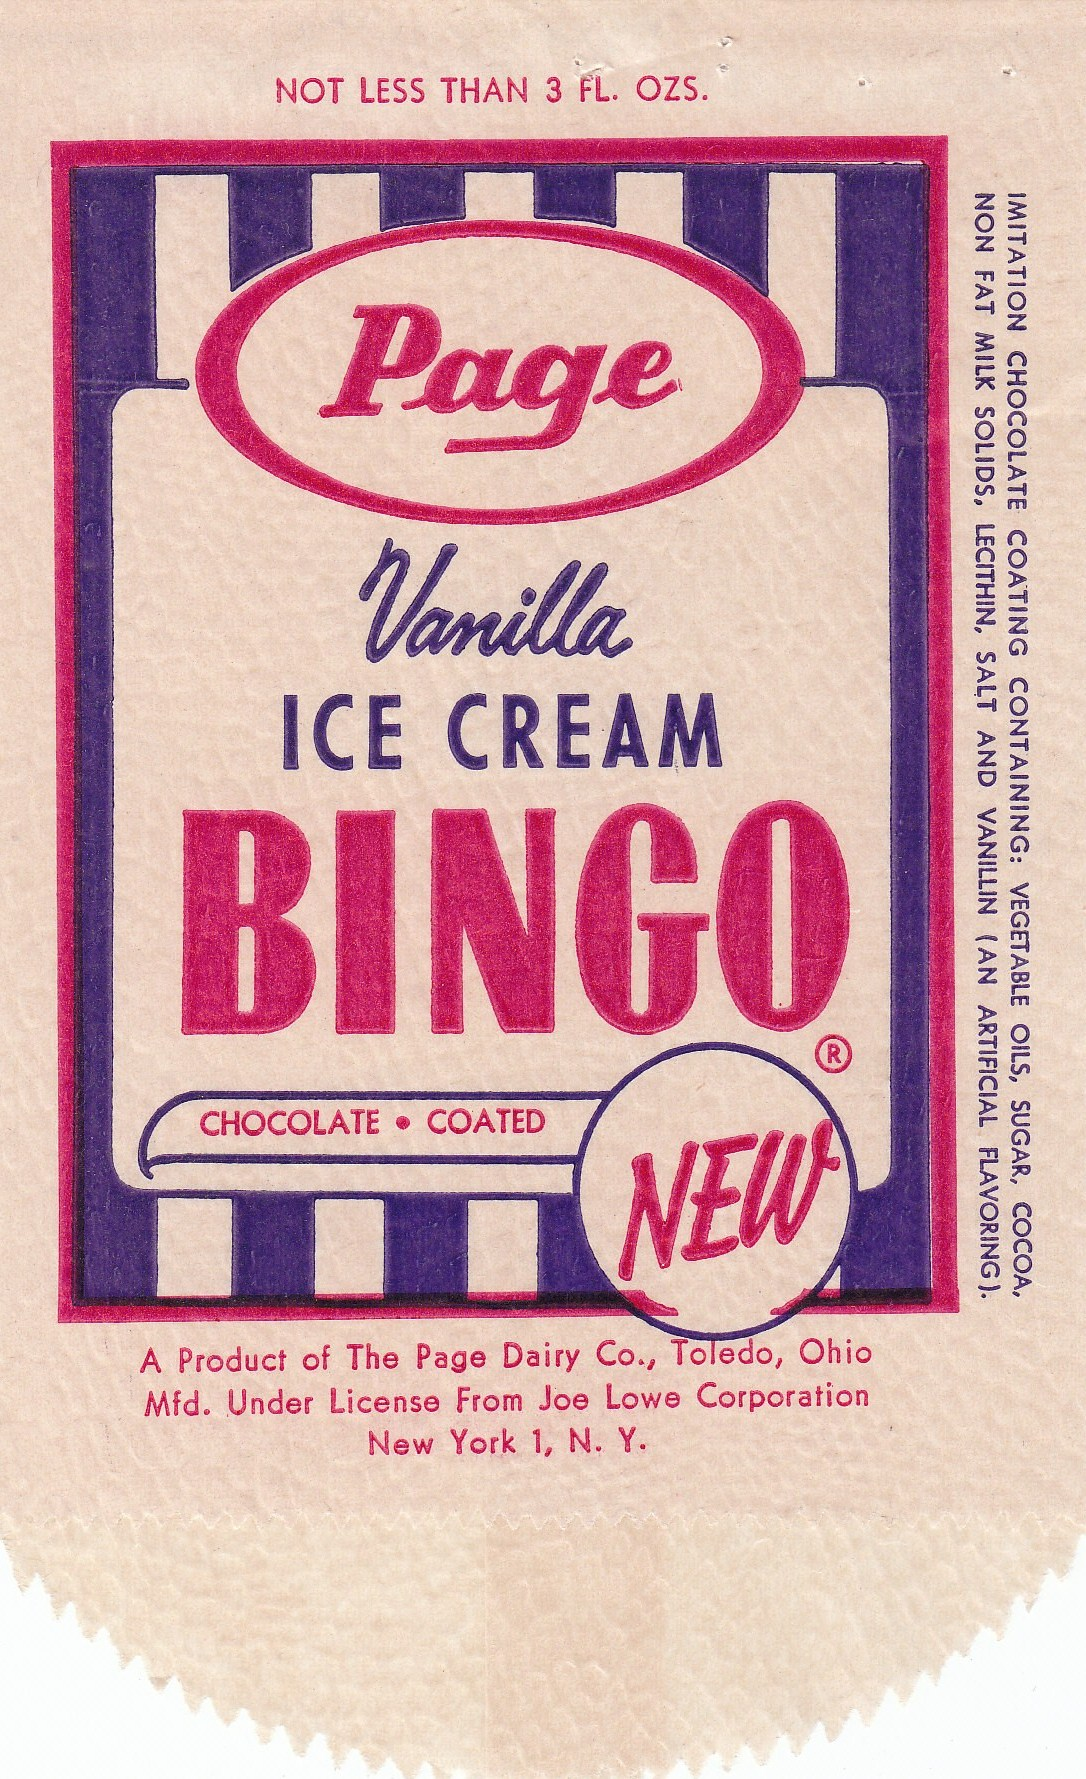 Ice Cream Bingo Wrapper